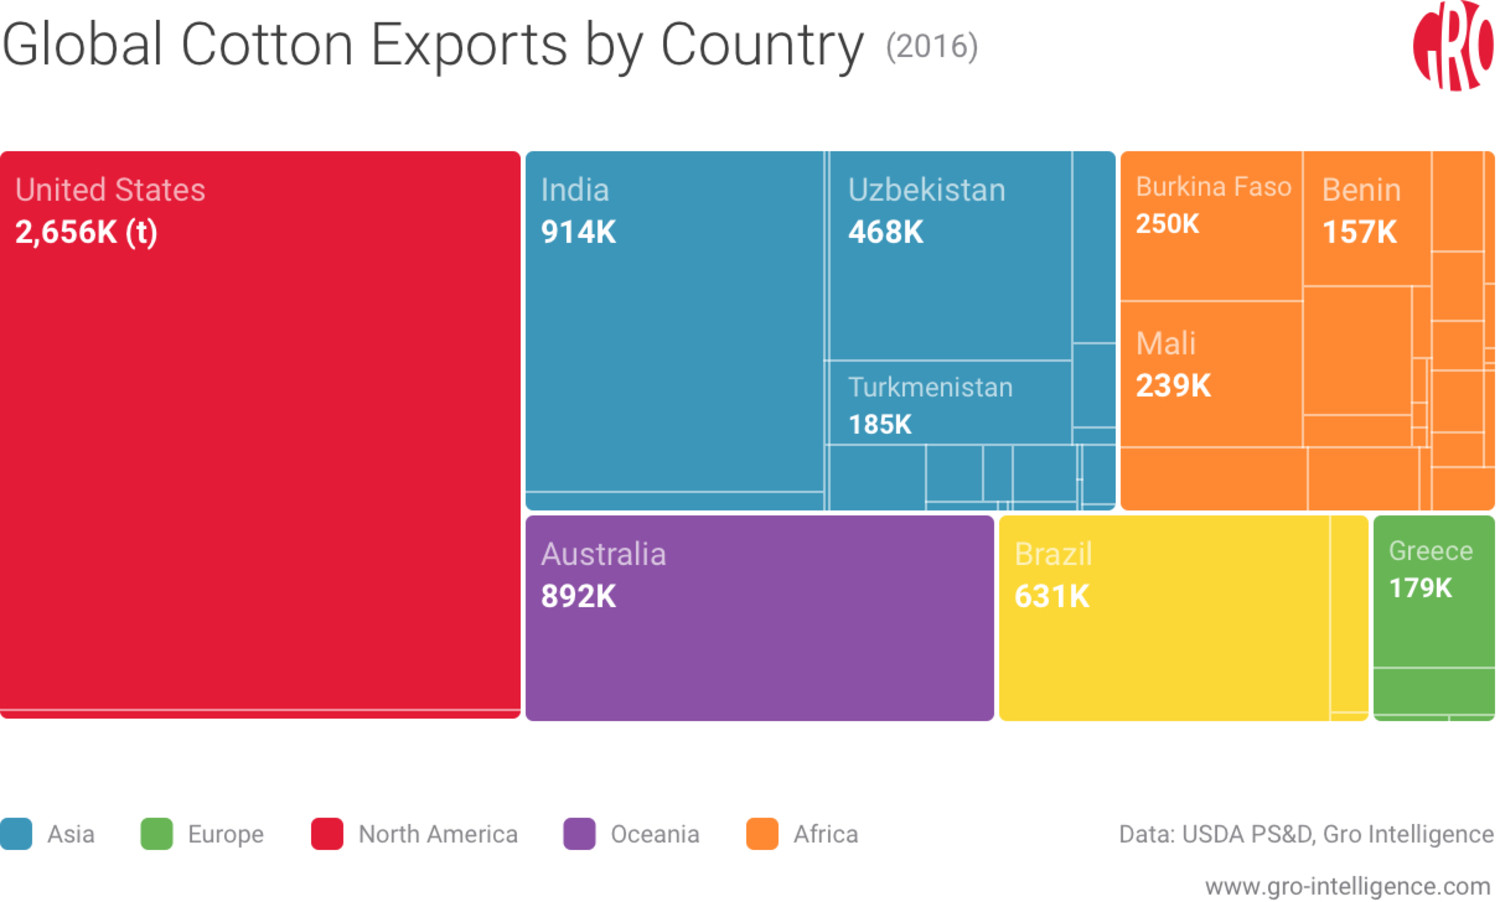 Global Cotton Production by Country